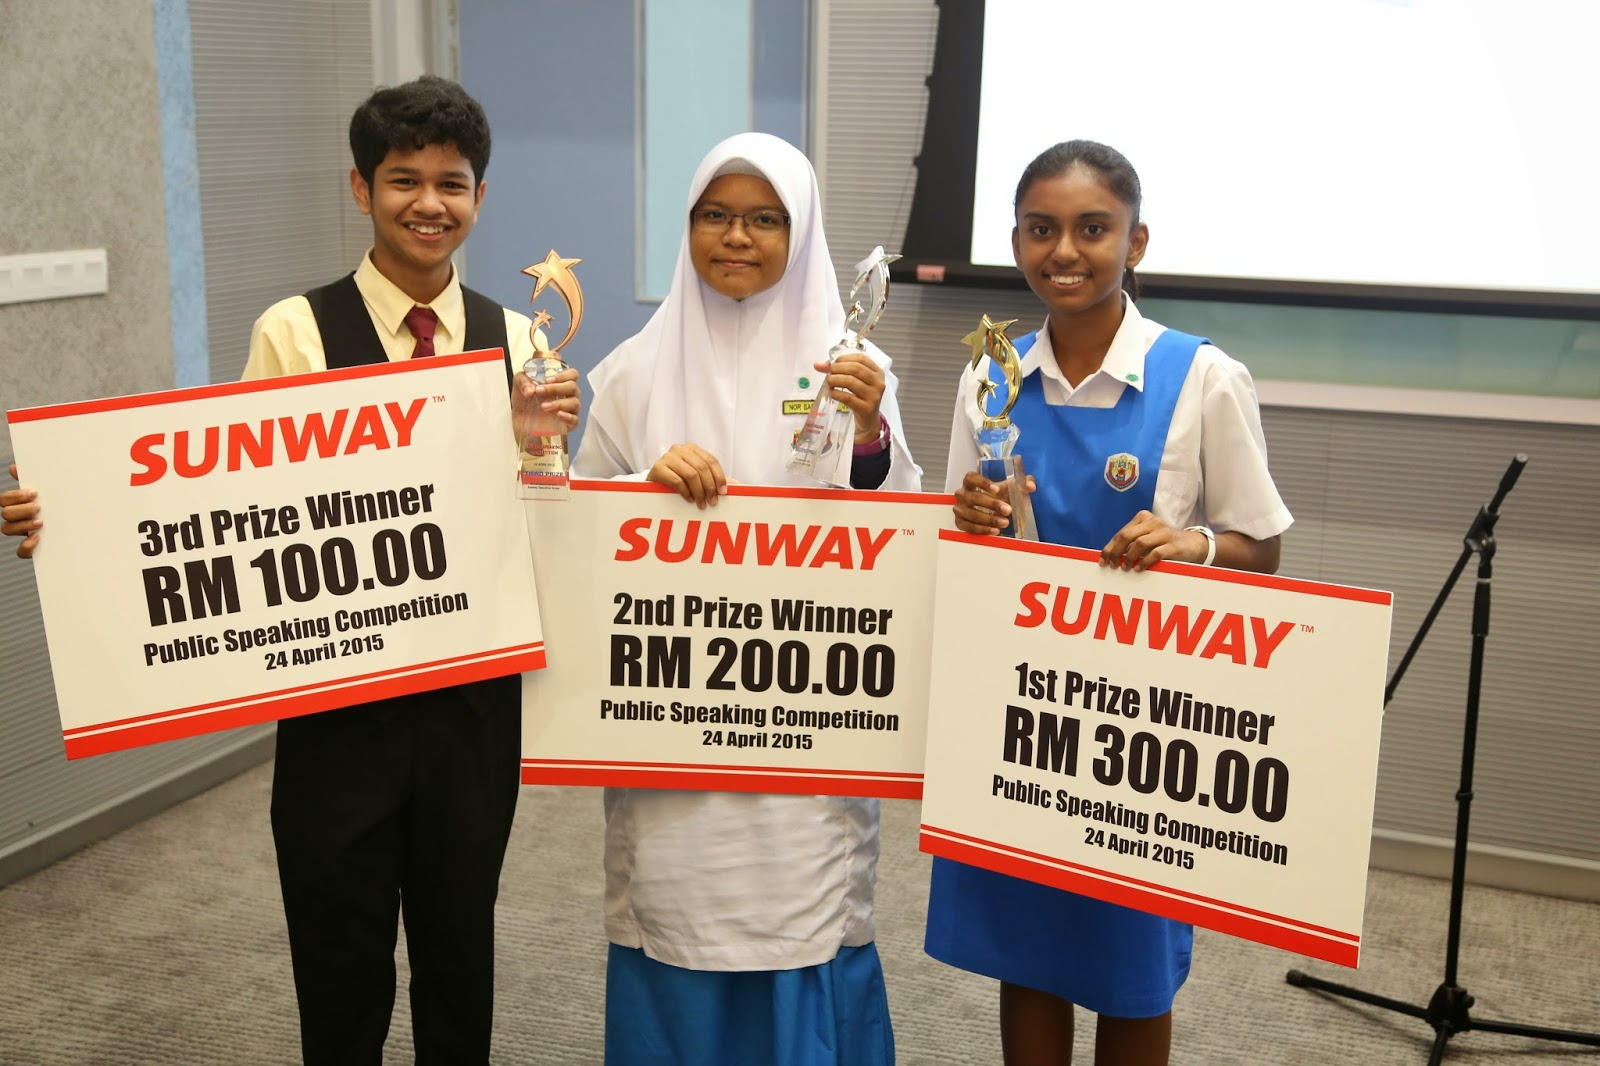 Sunway Public Speaking Competition 2015